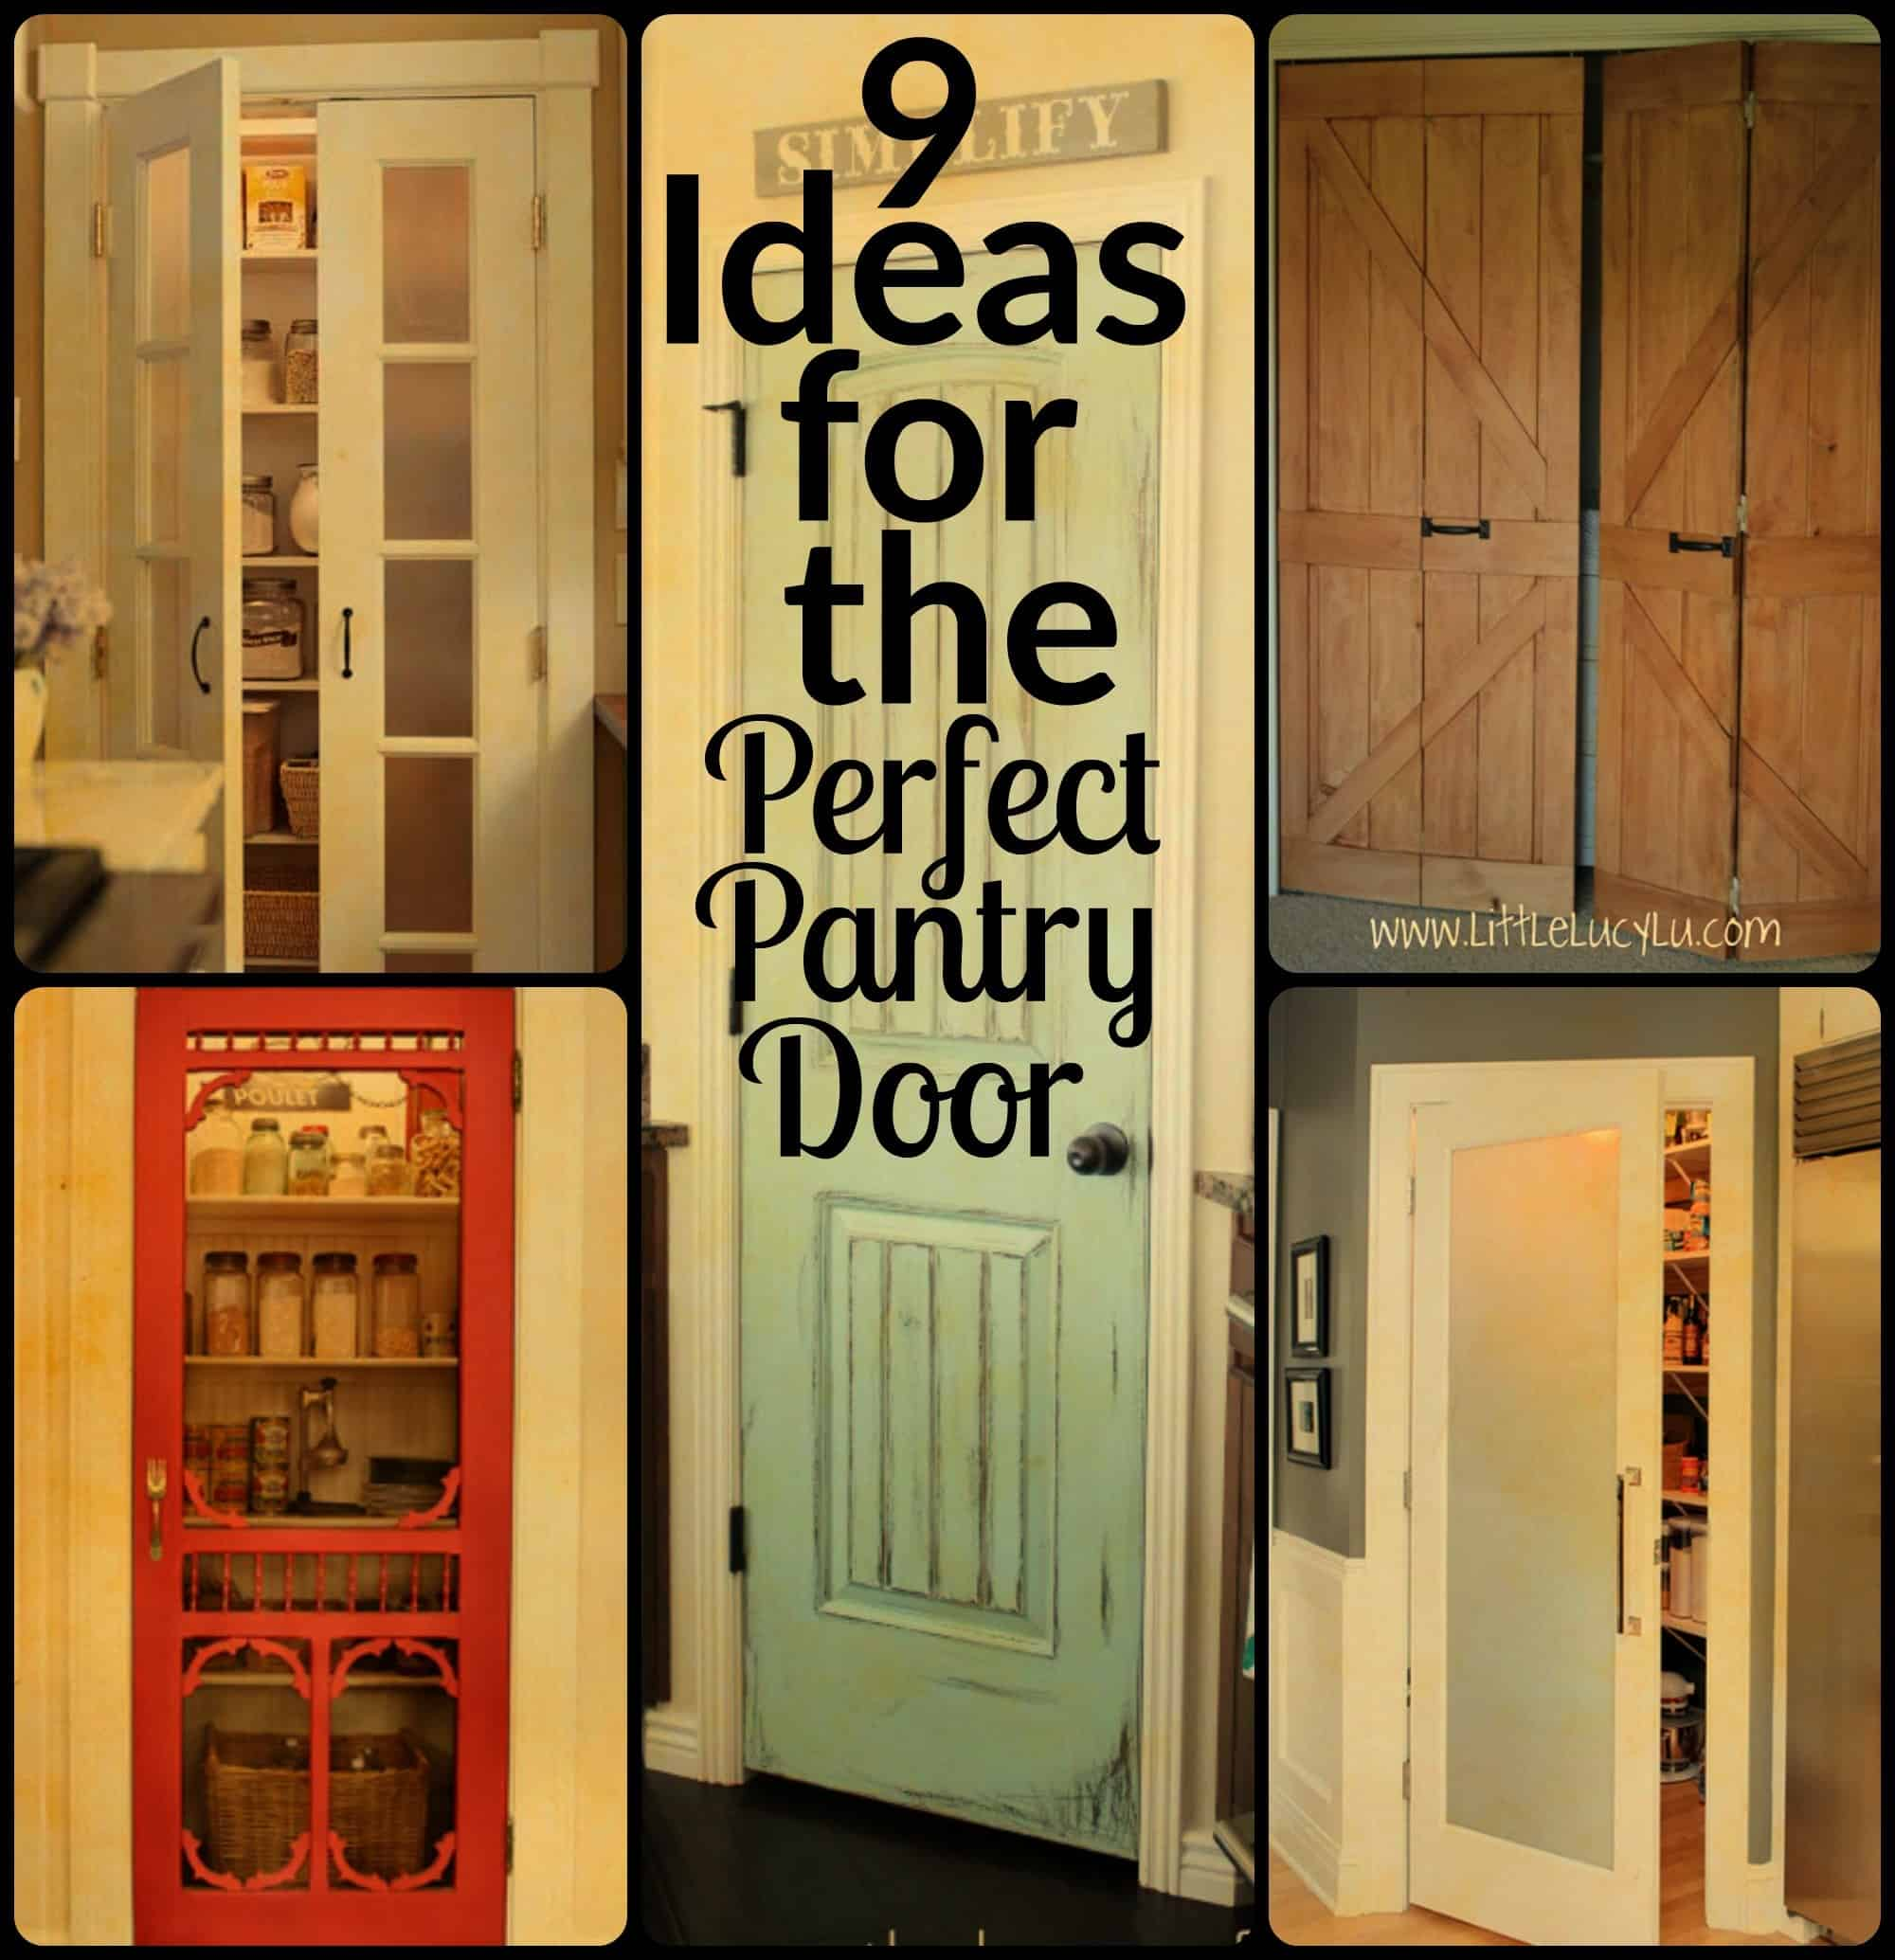 How to open a bathroom door - 9 Ideas For The Perfect Pantry Door